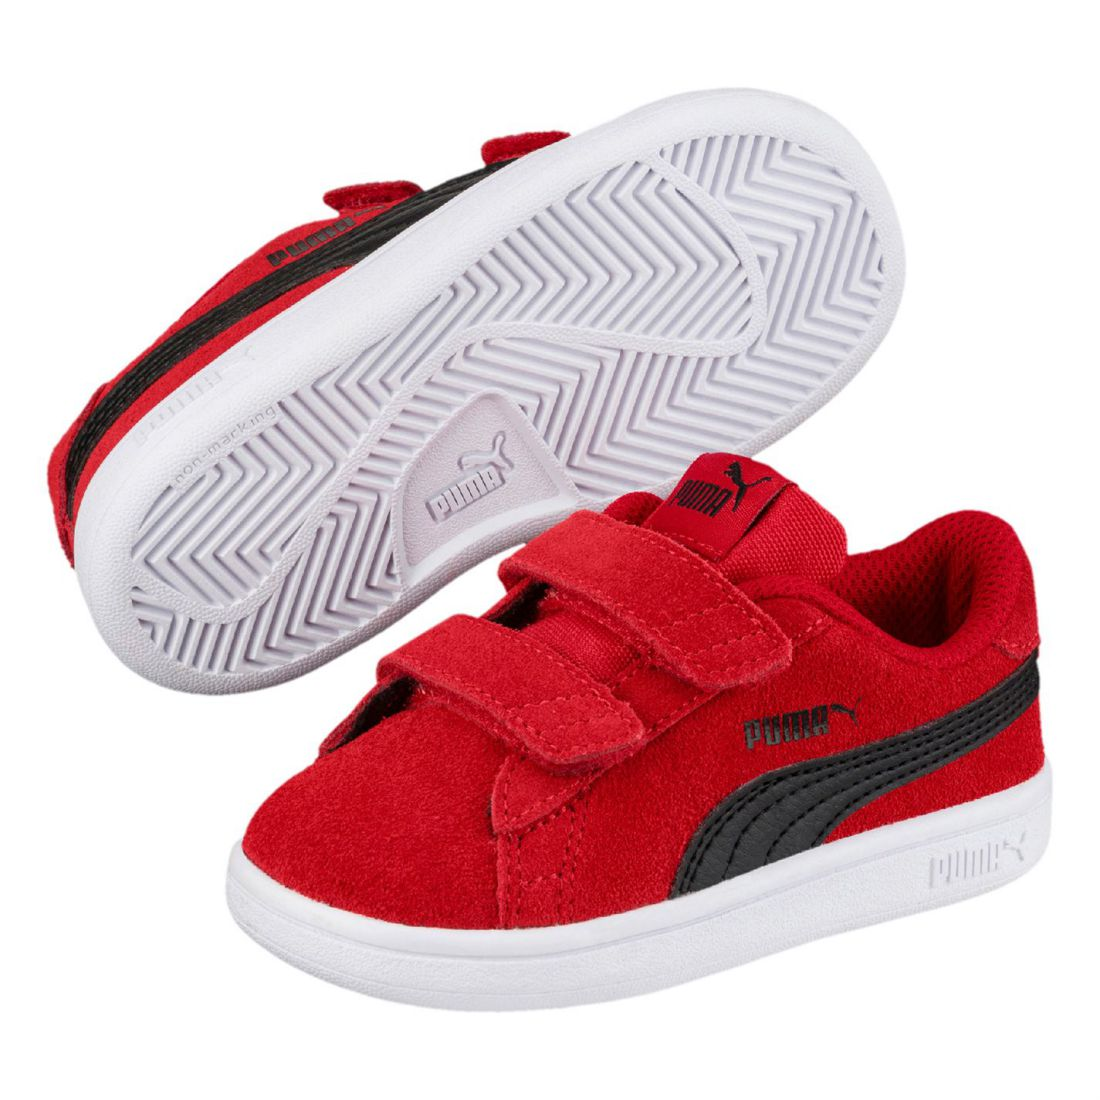 Details about Puma Smash Suede Inf 84 Childrens Sneakers